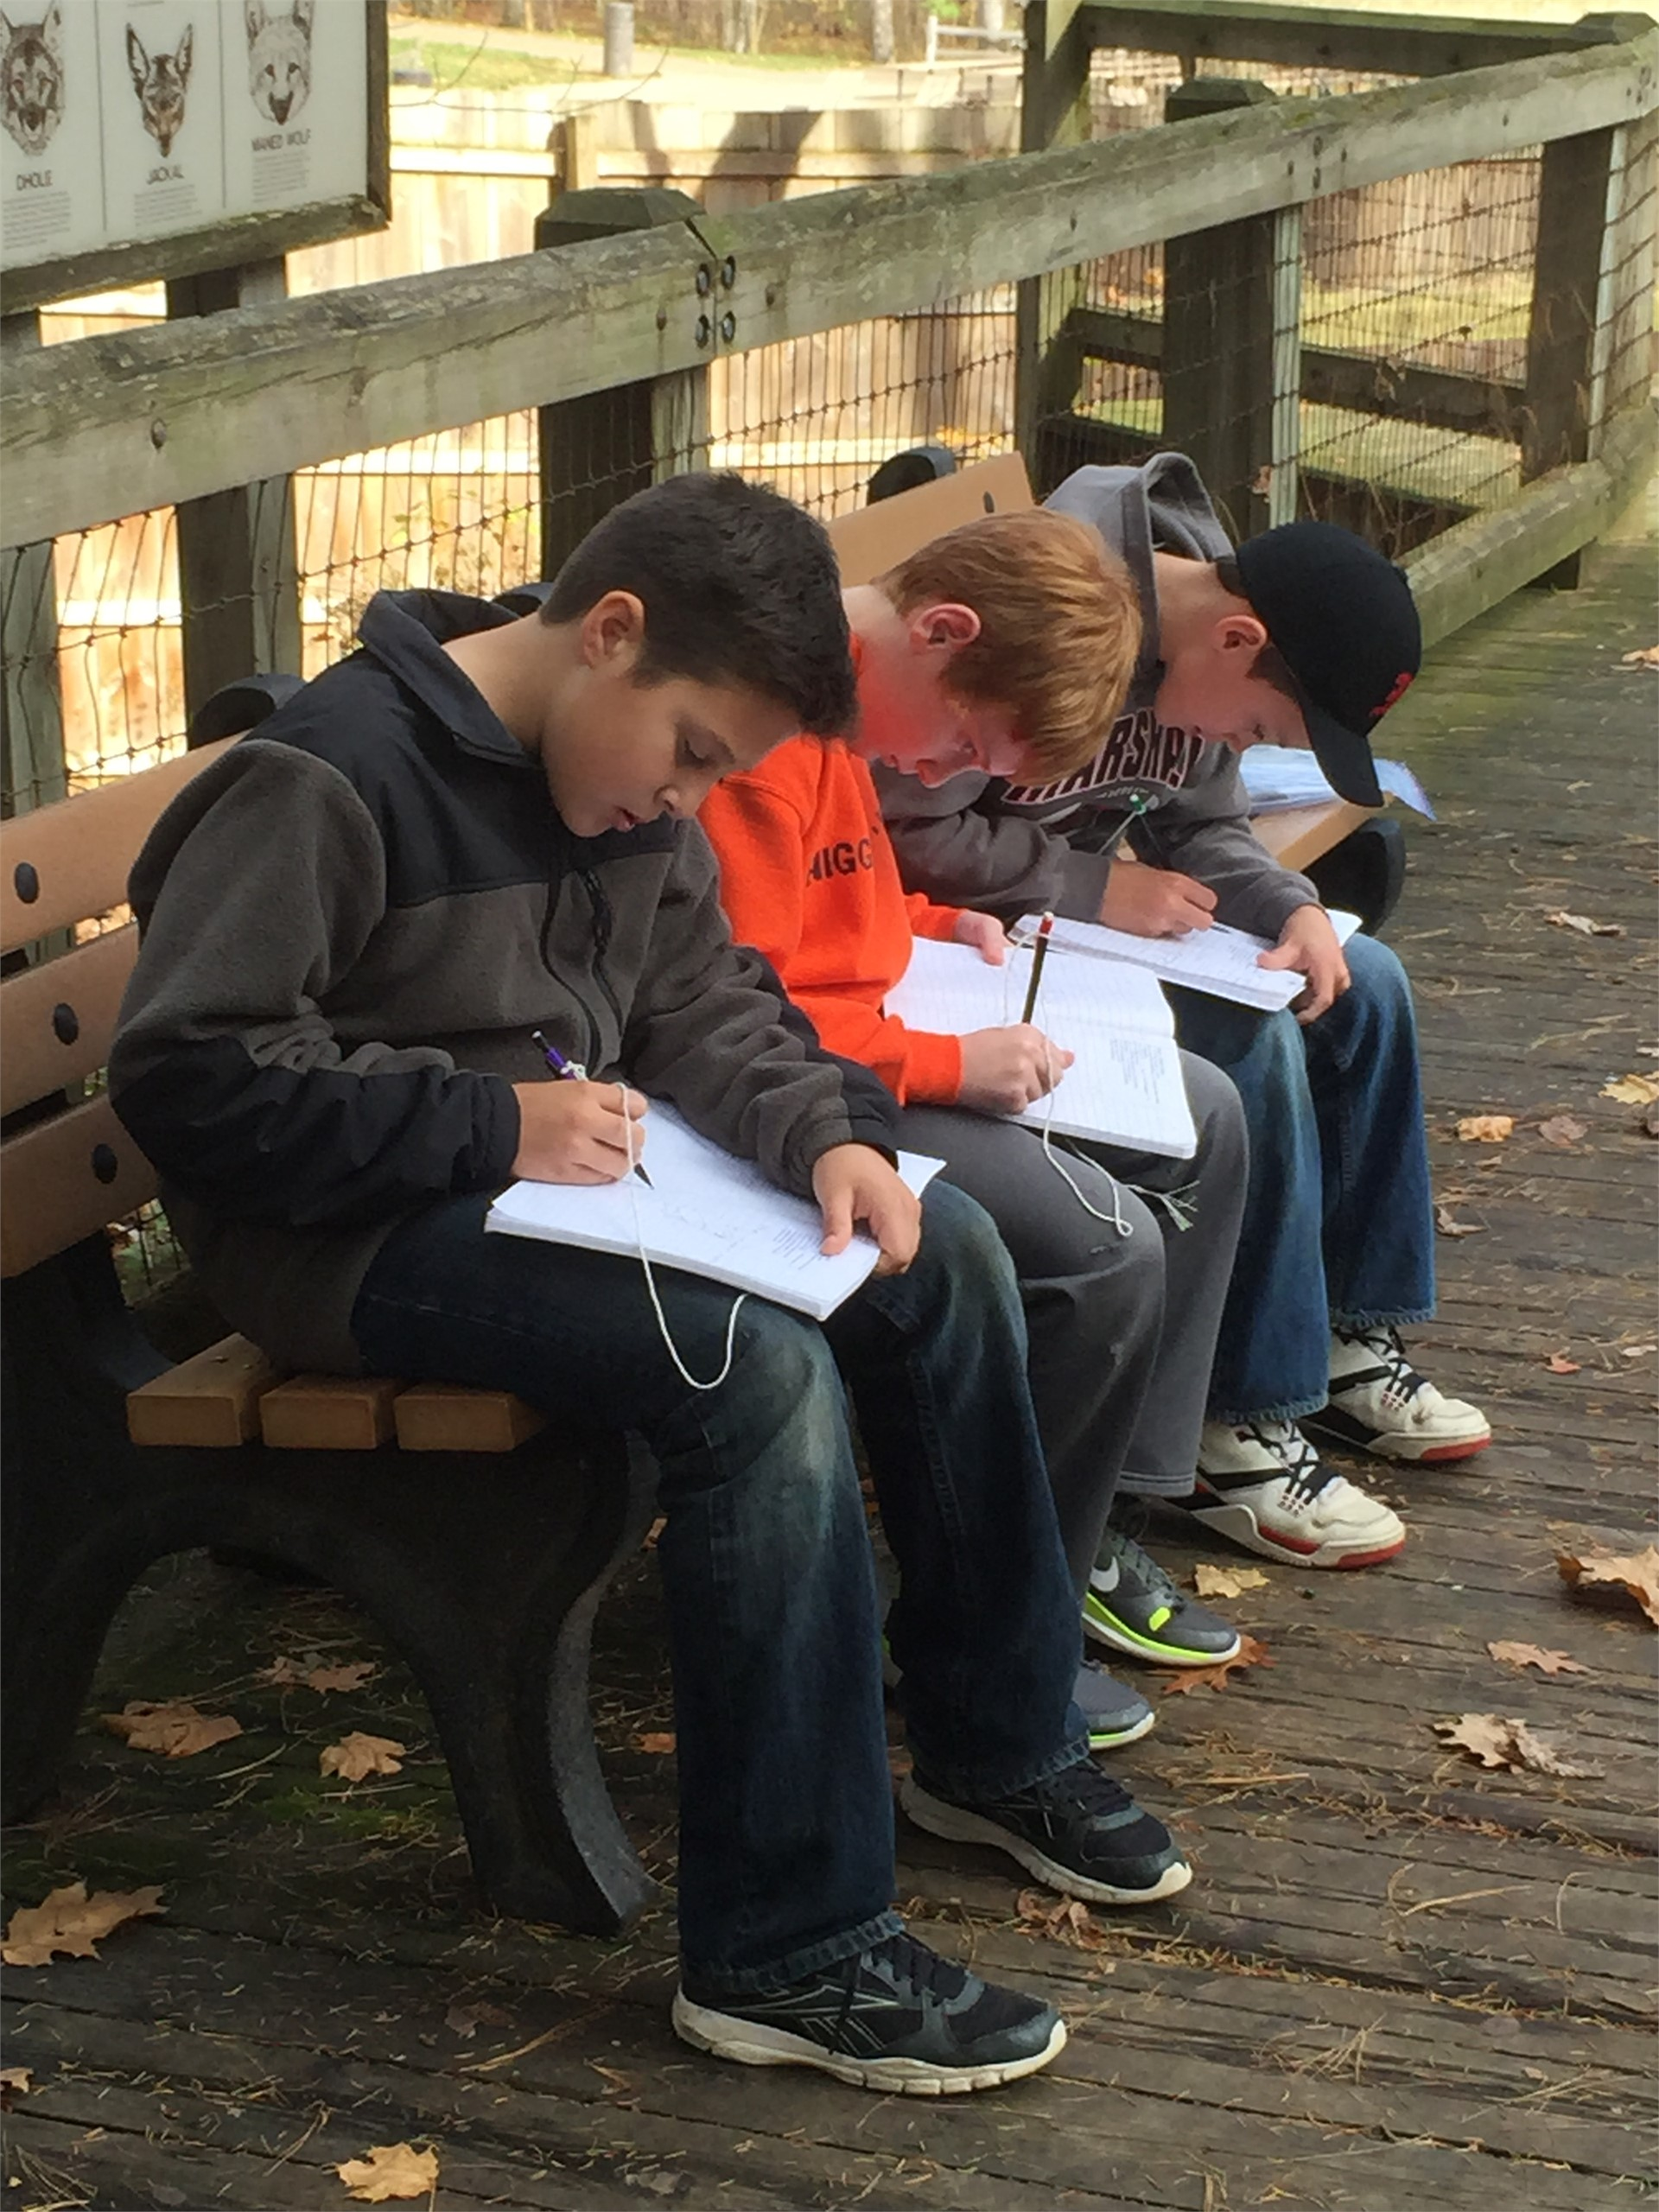 Students making notes during a lesson outdoors